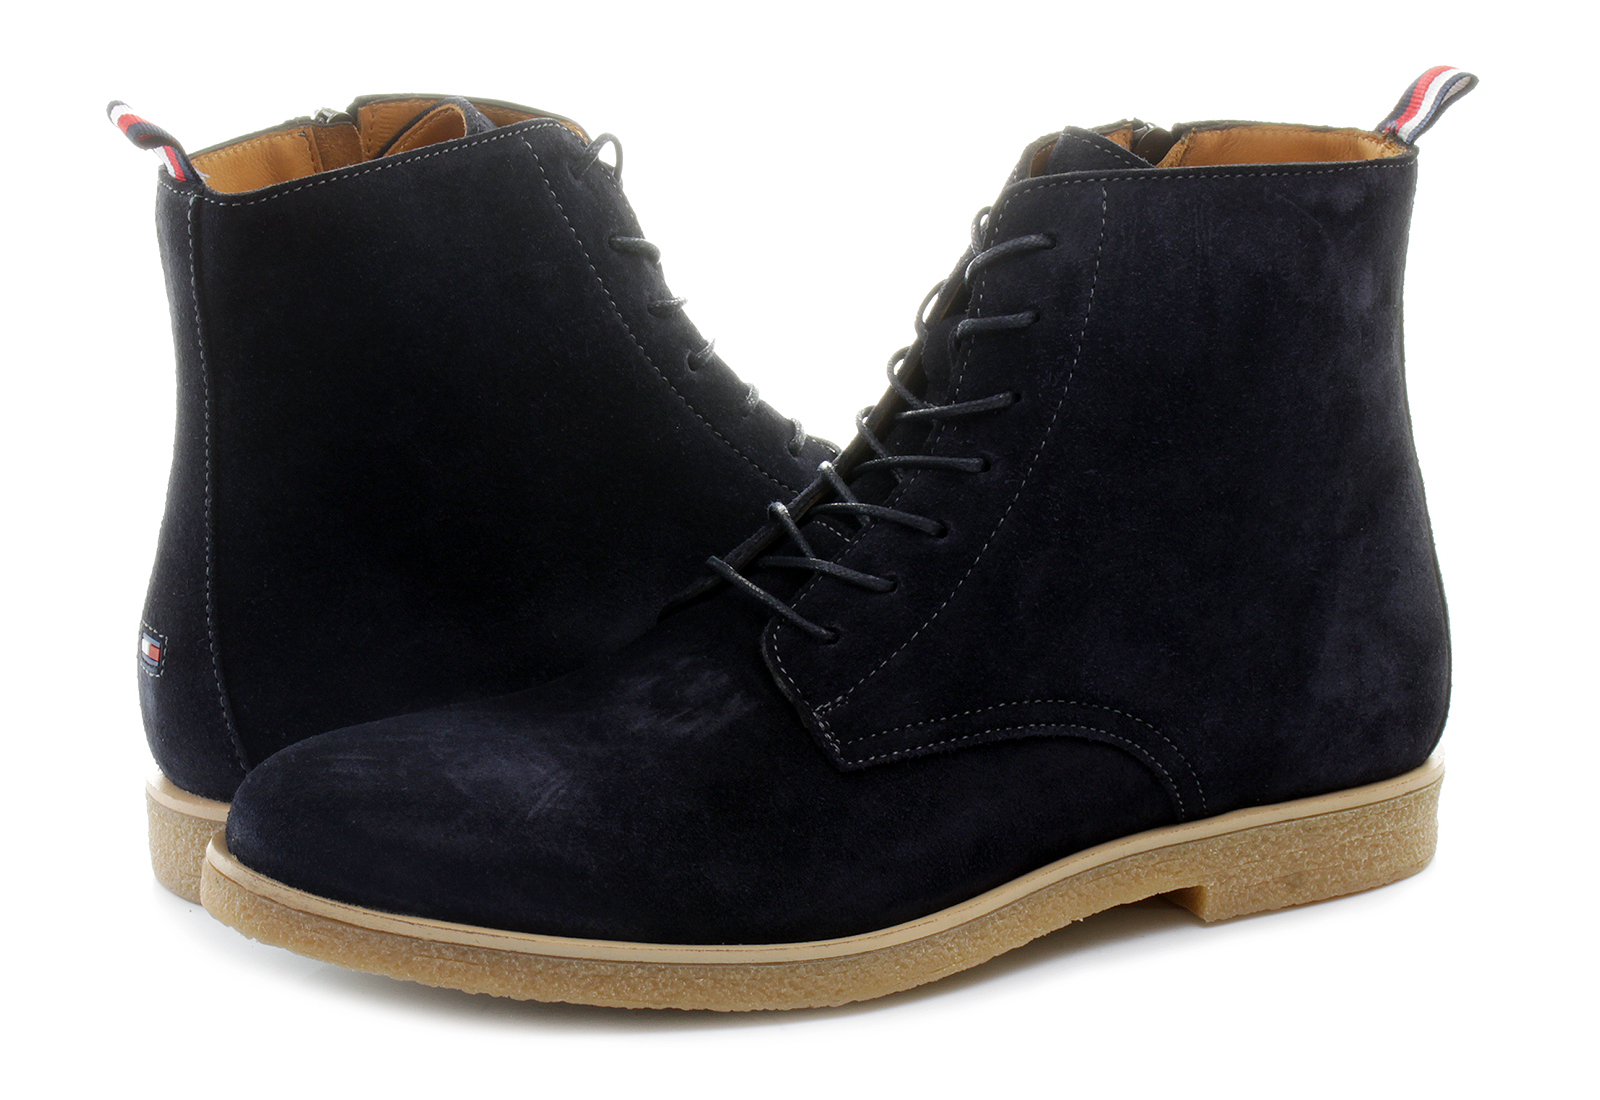 Tommy Hilfiger Boots - William 3b - 17F-1018-403 - Online shop for sneakers, shoes and boots